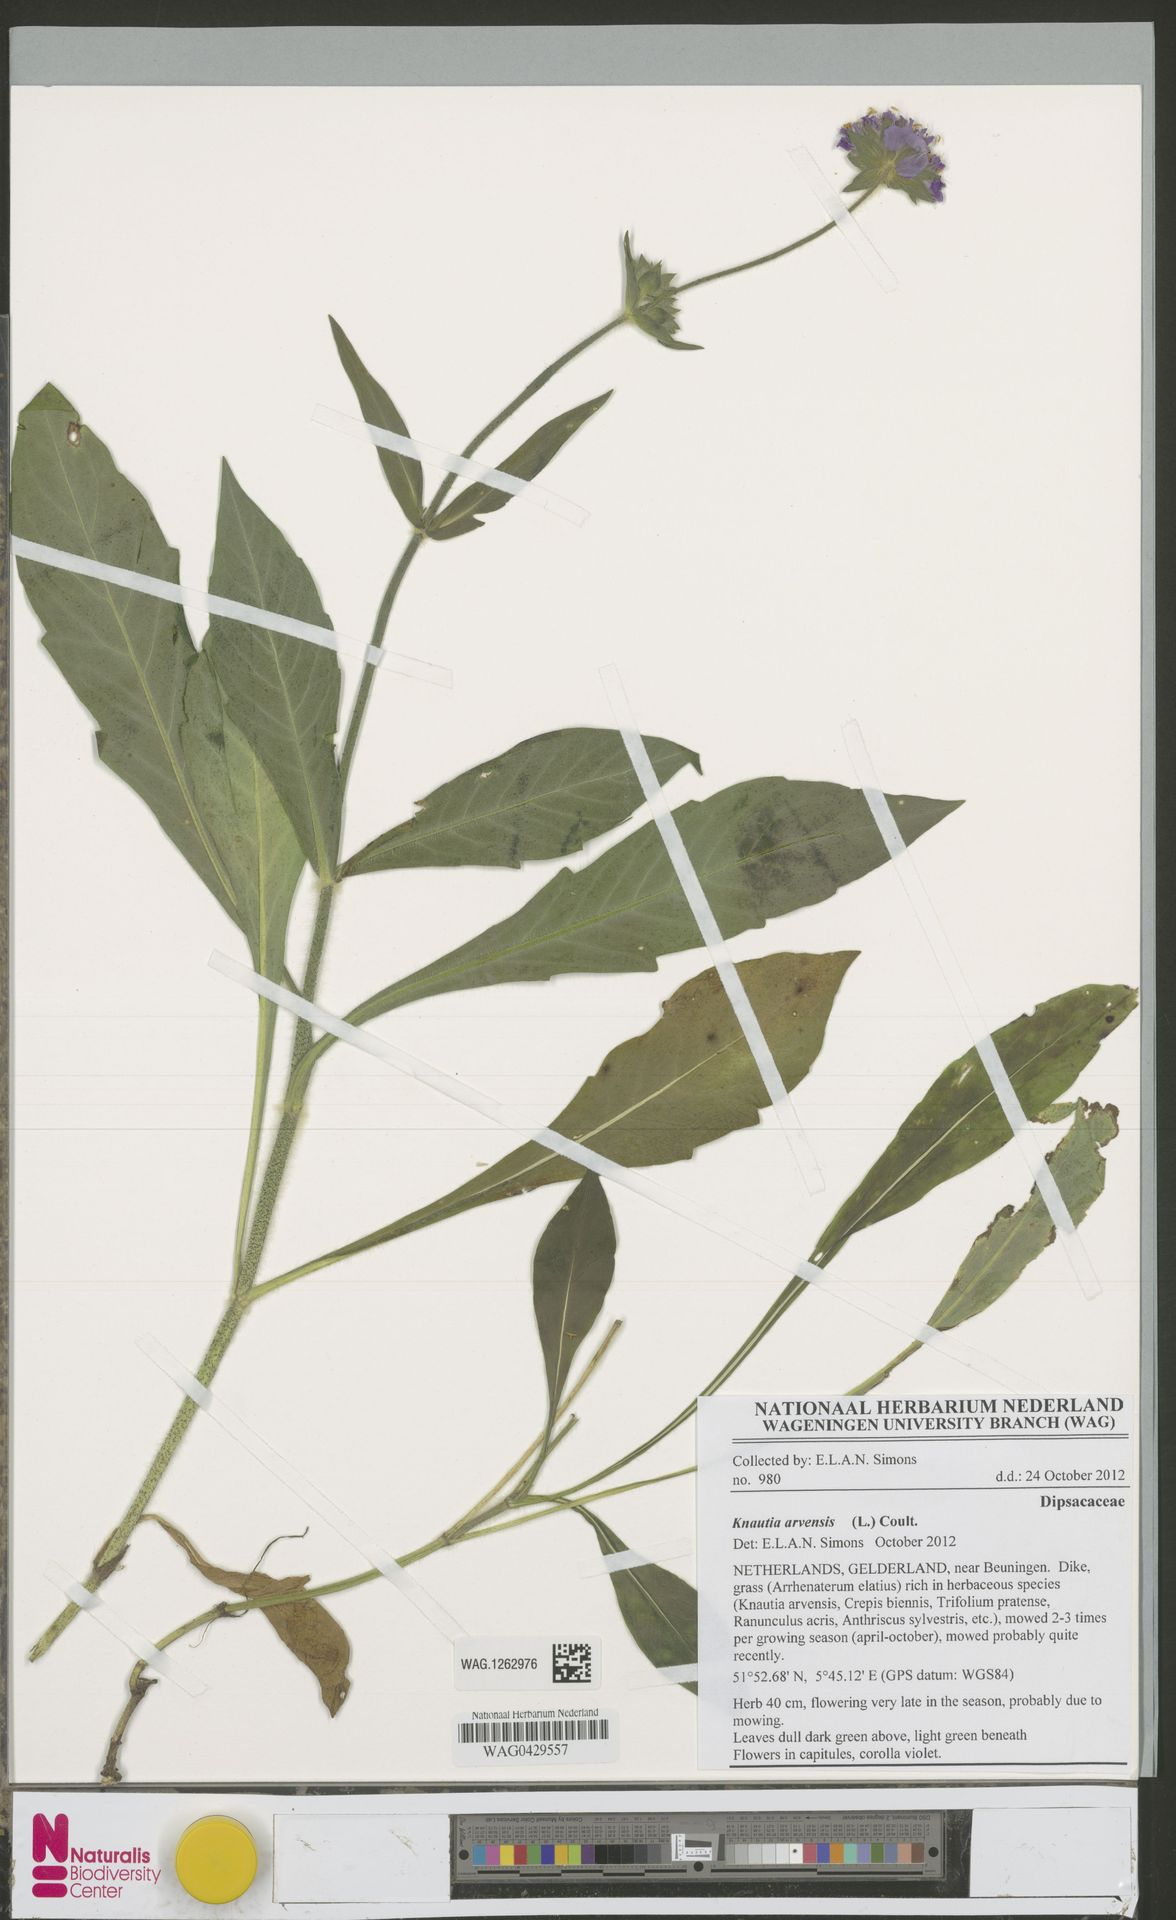 WAG.1262976   Knautia arvensis (L.) Coult.